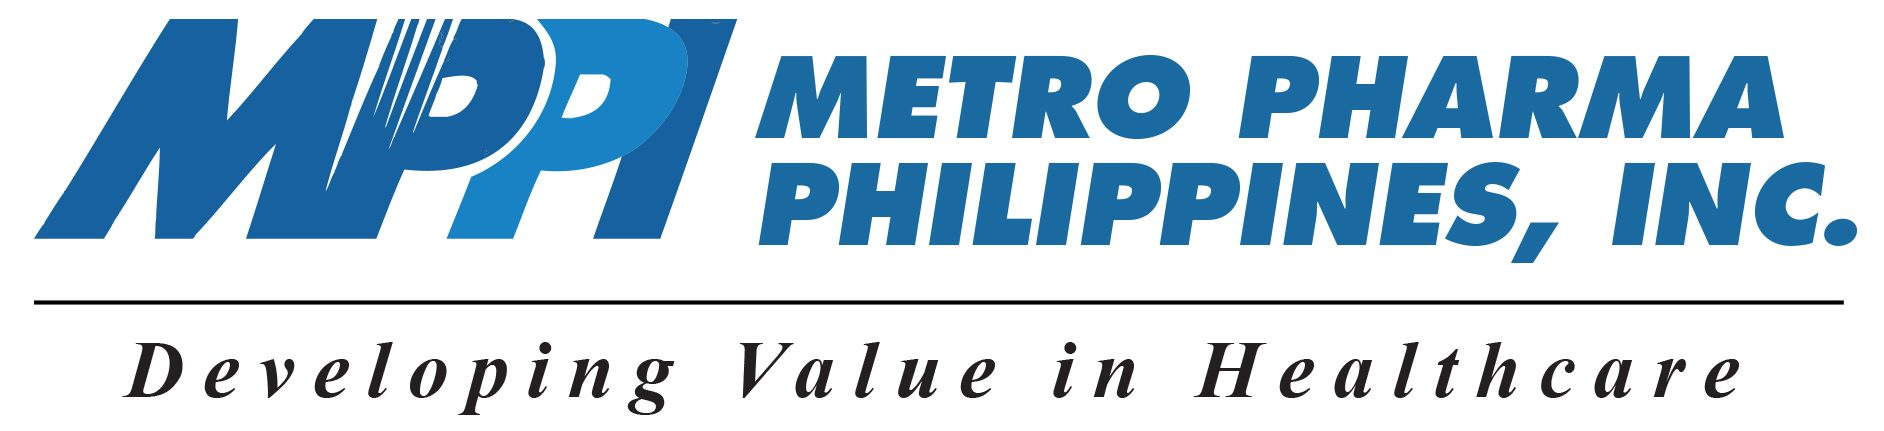 Metro Pharma Phils. Inc.